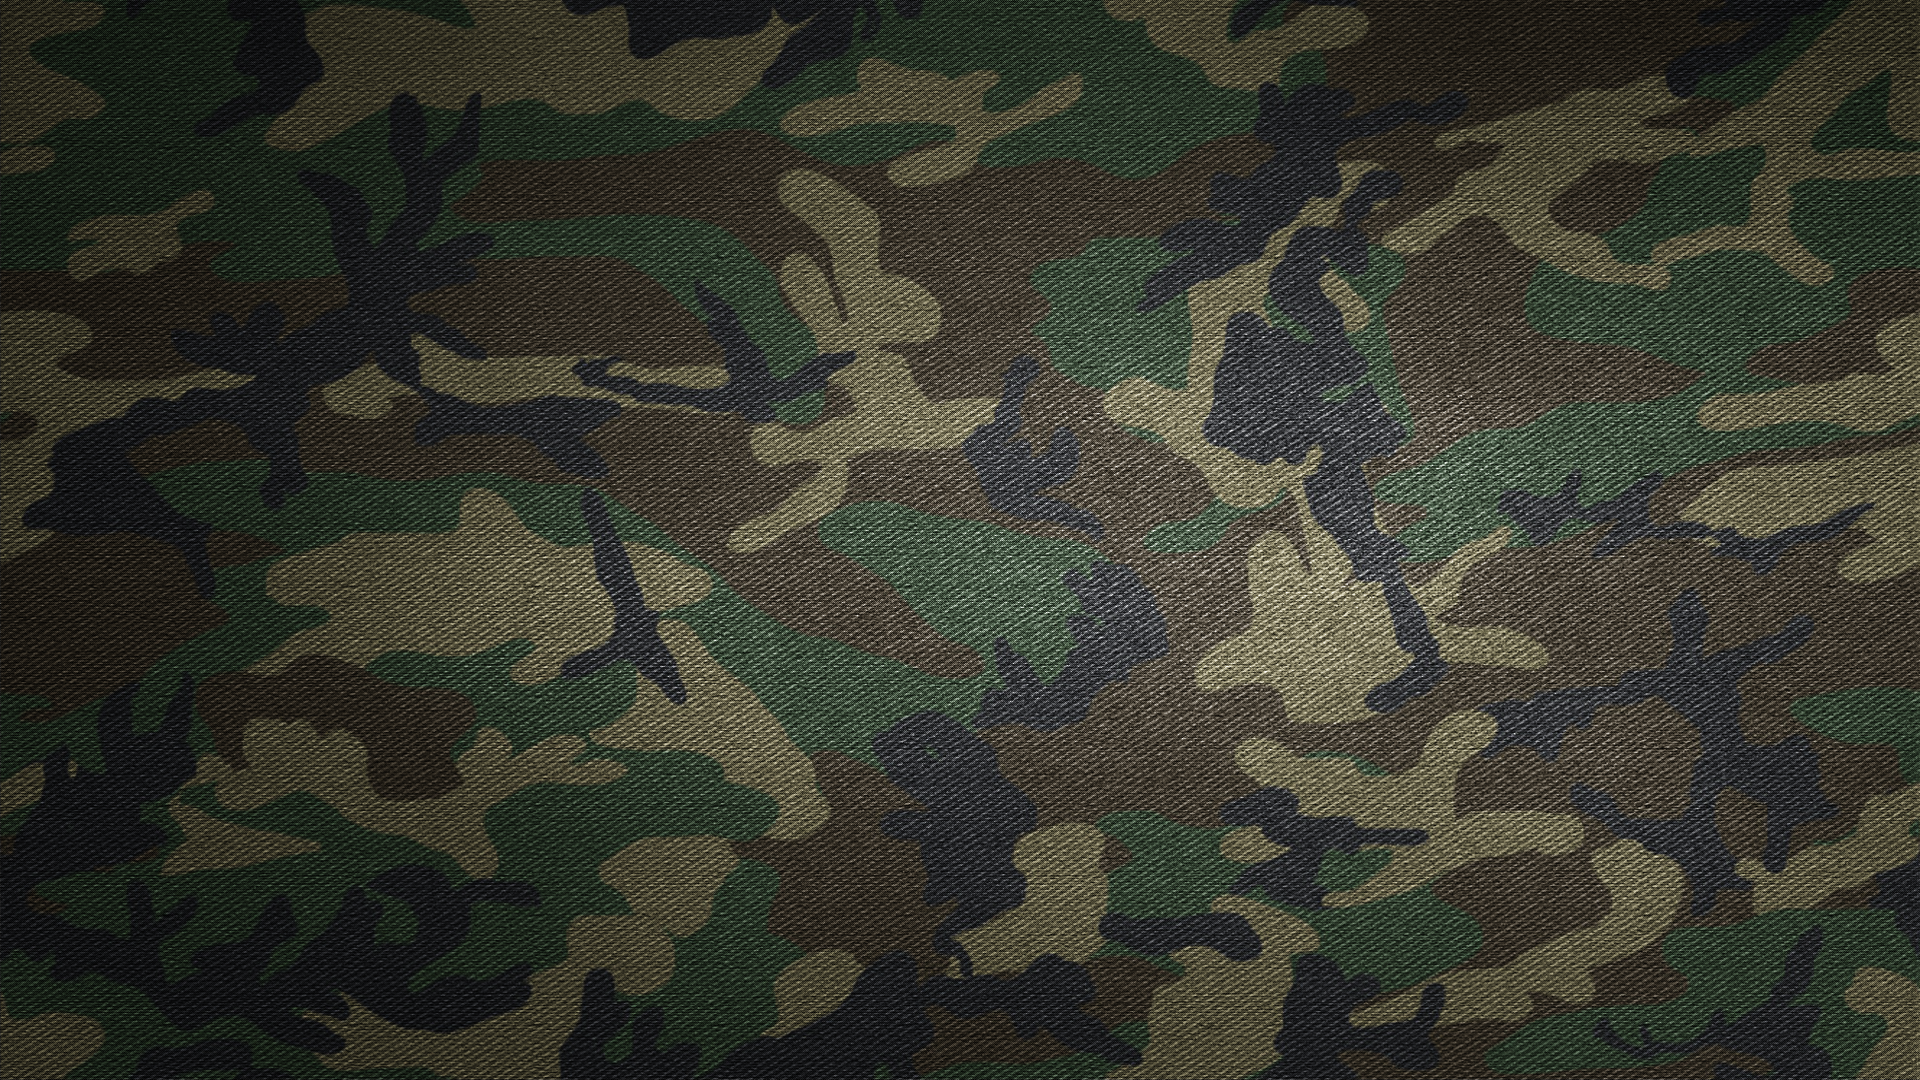 49 Army Camo Wallpaper On Wallpapersafari